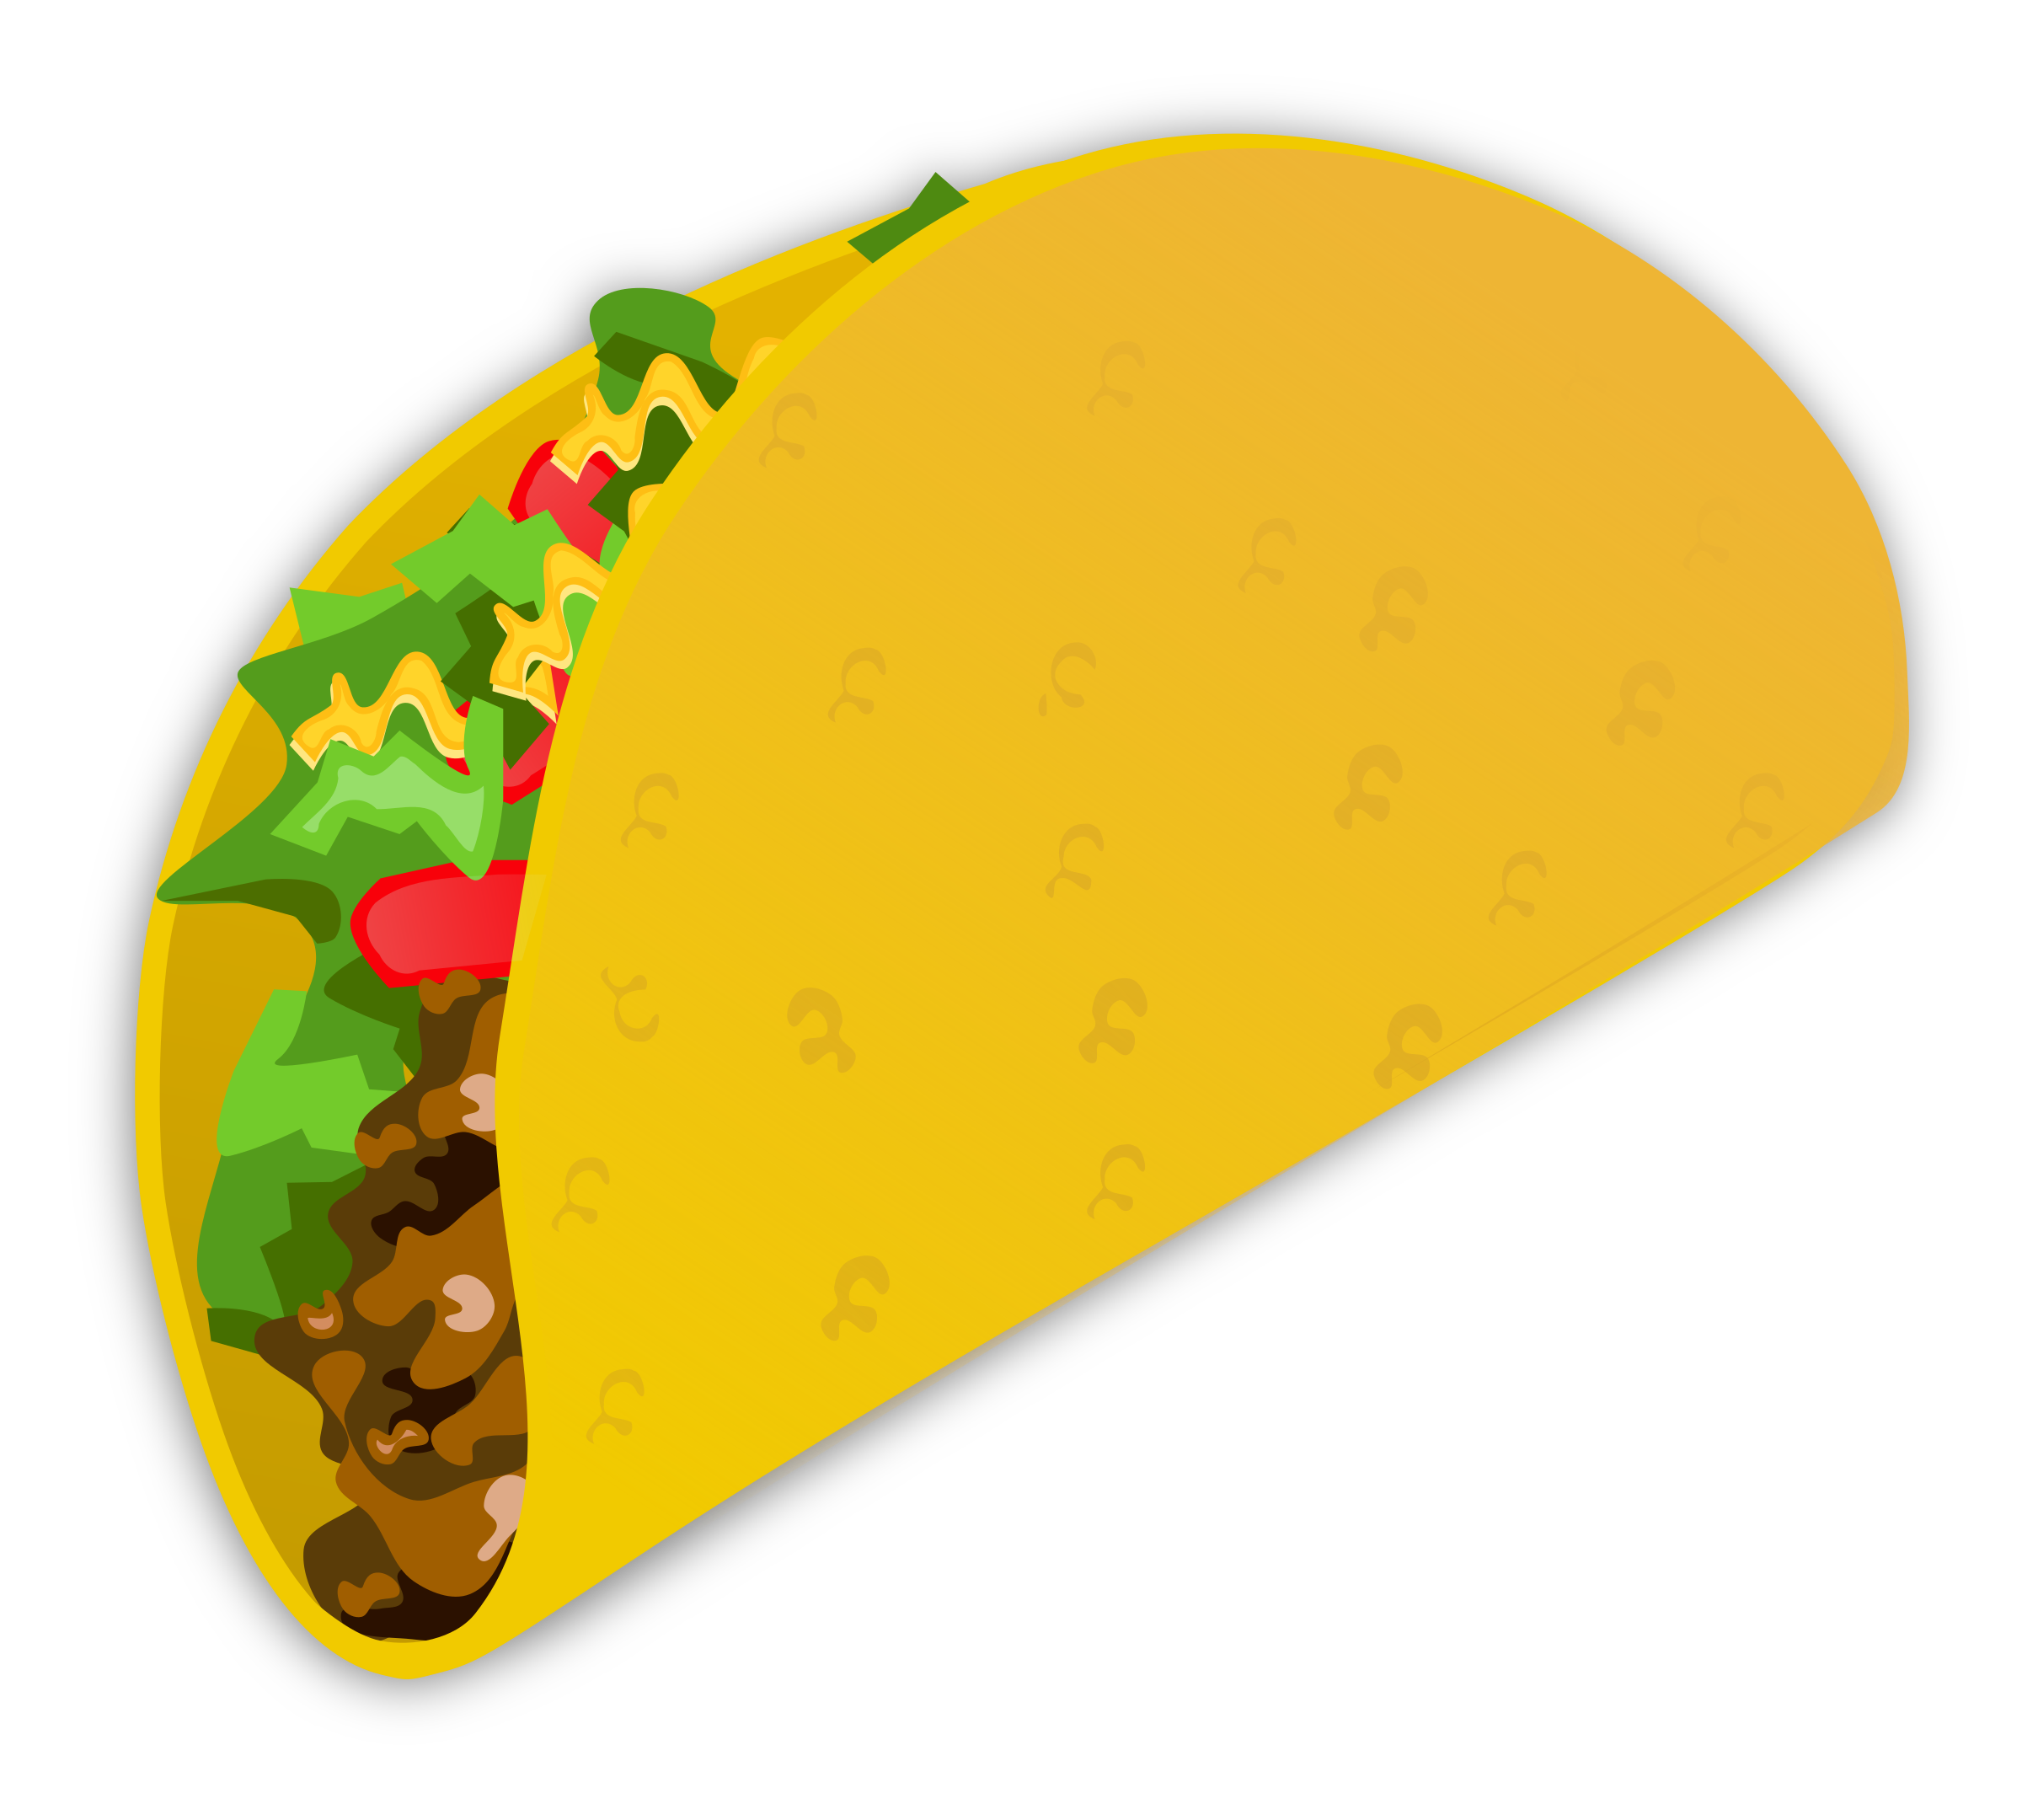 clipart taco rh openclipart org taco clip art images taco clipart images